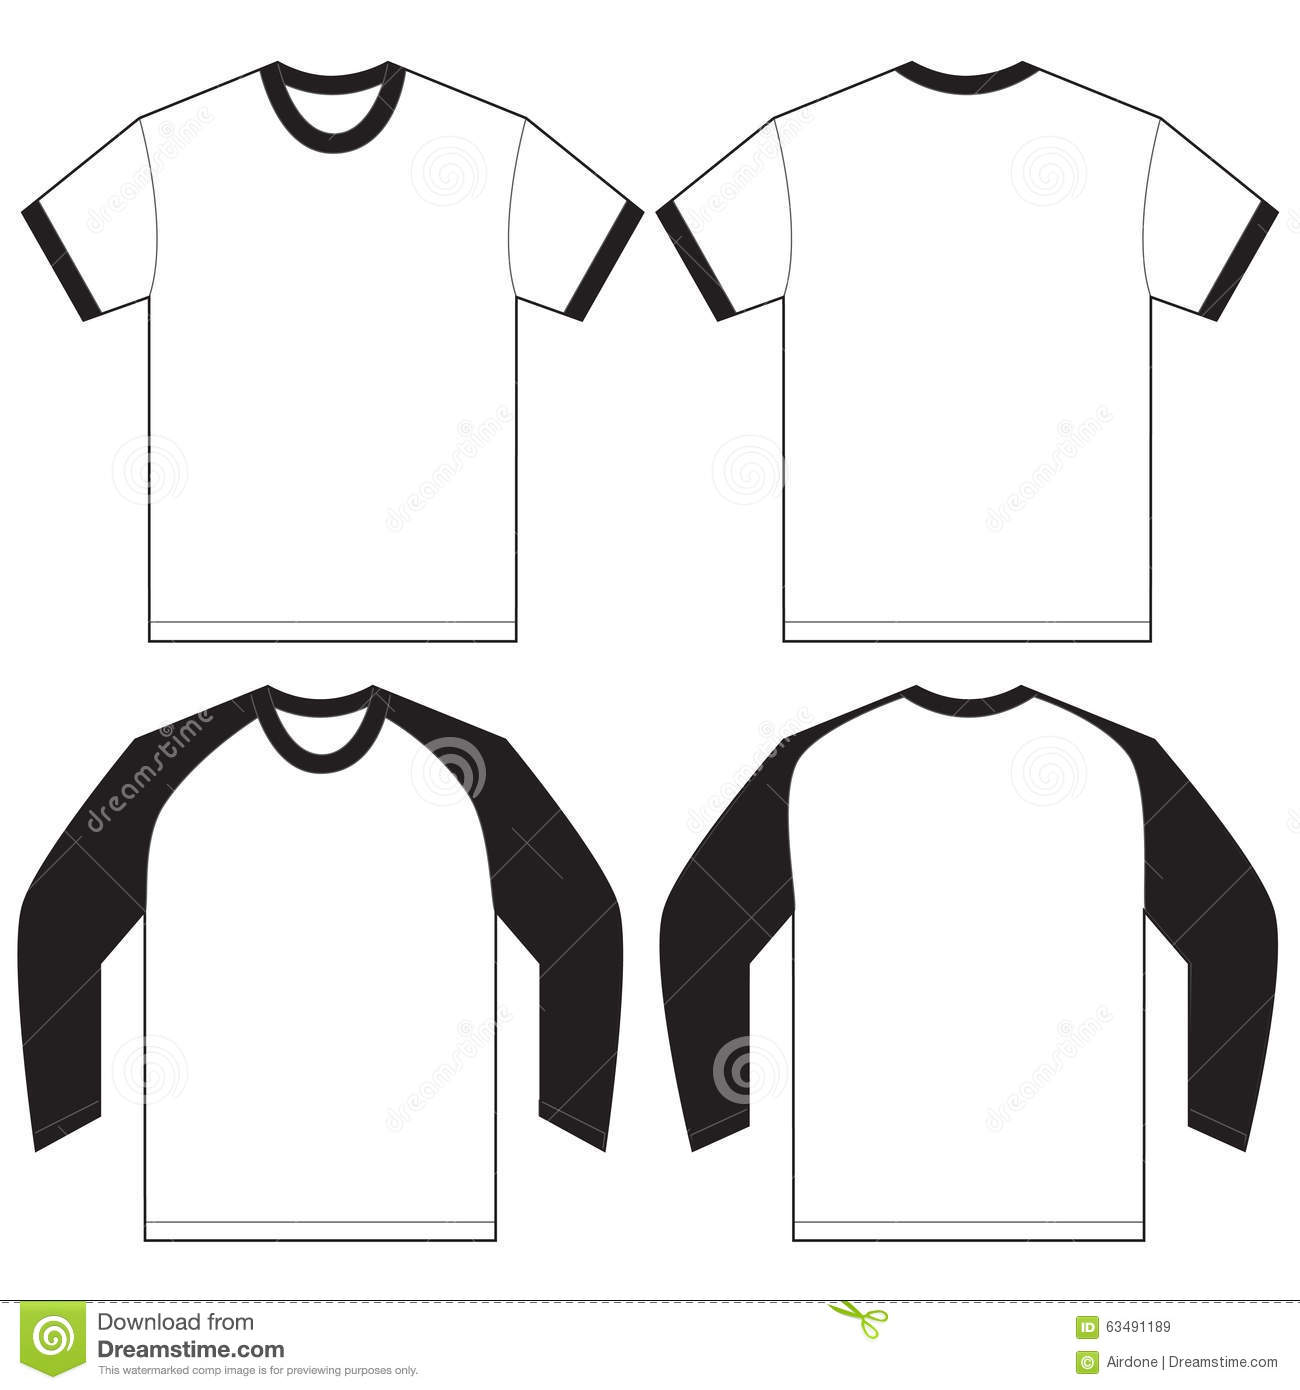 Black t shirt design template - Black White Ringer T Shirt Design Template